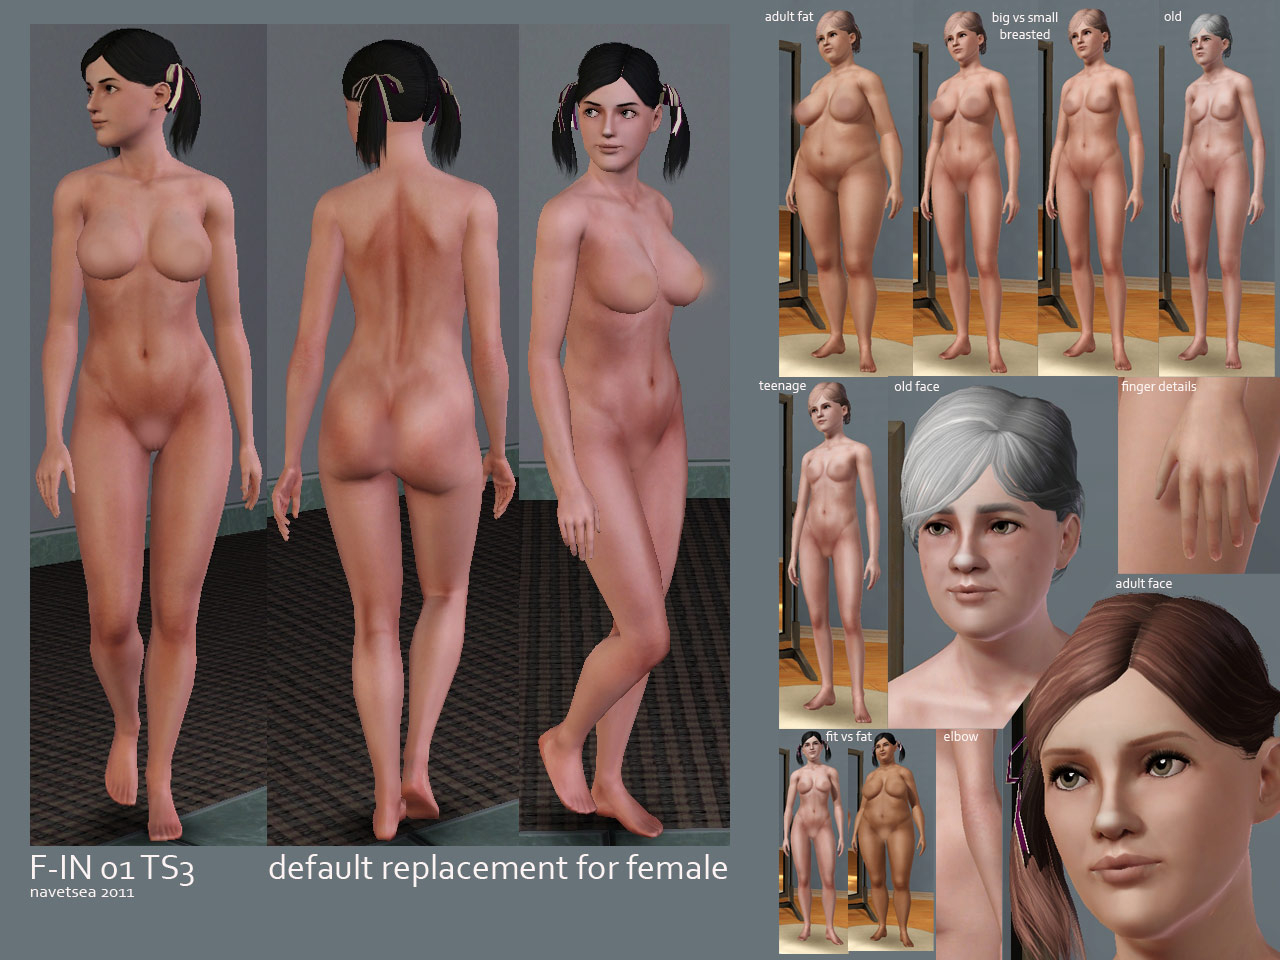 The sims 3 porno mod nude galleries